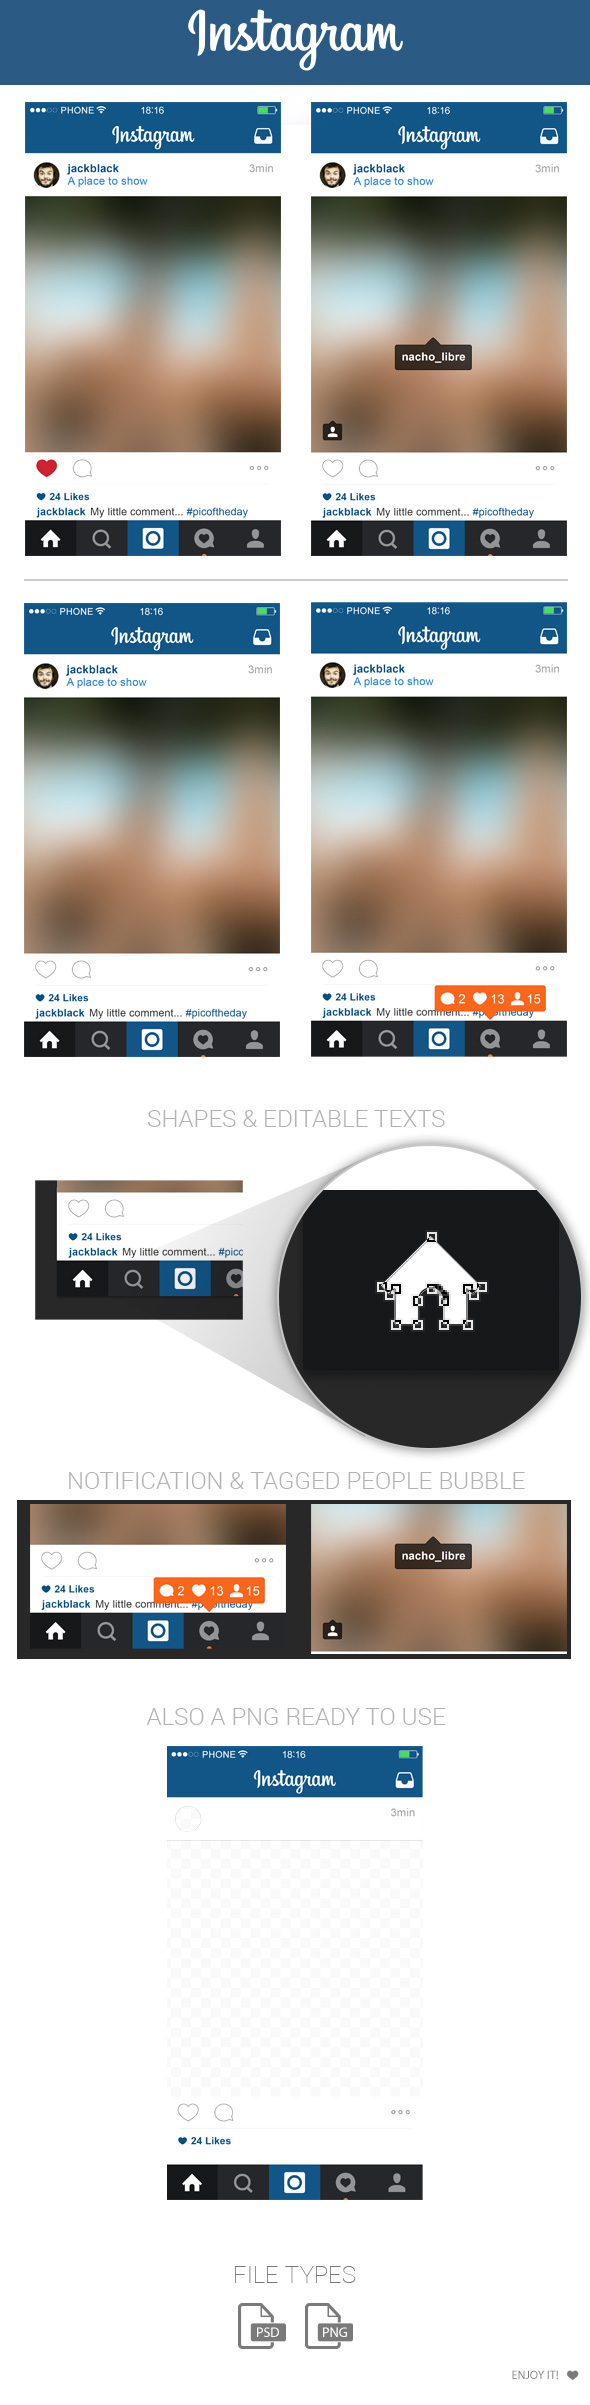 590x2405 Free Instagram Home Layout Ui Psd May 2015 By Marinad